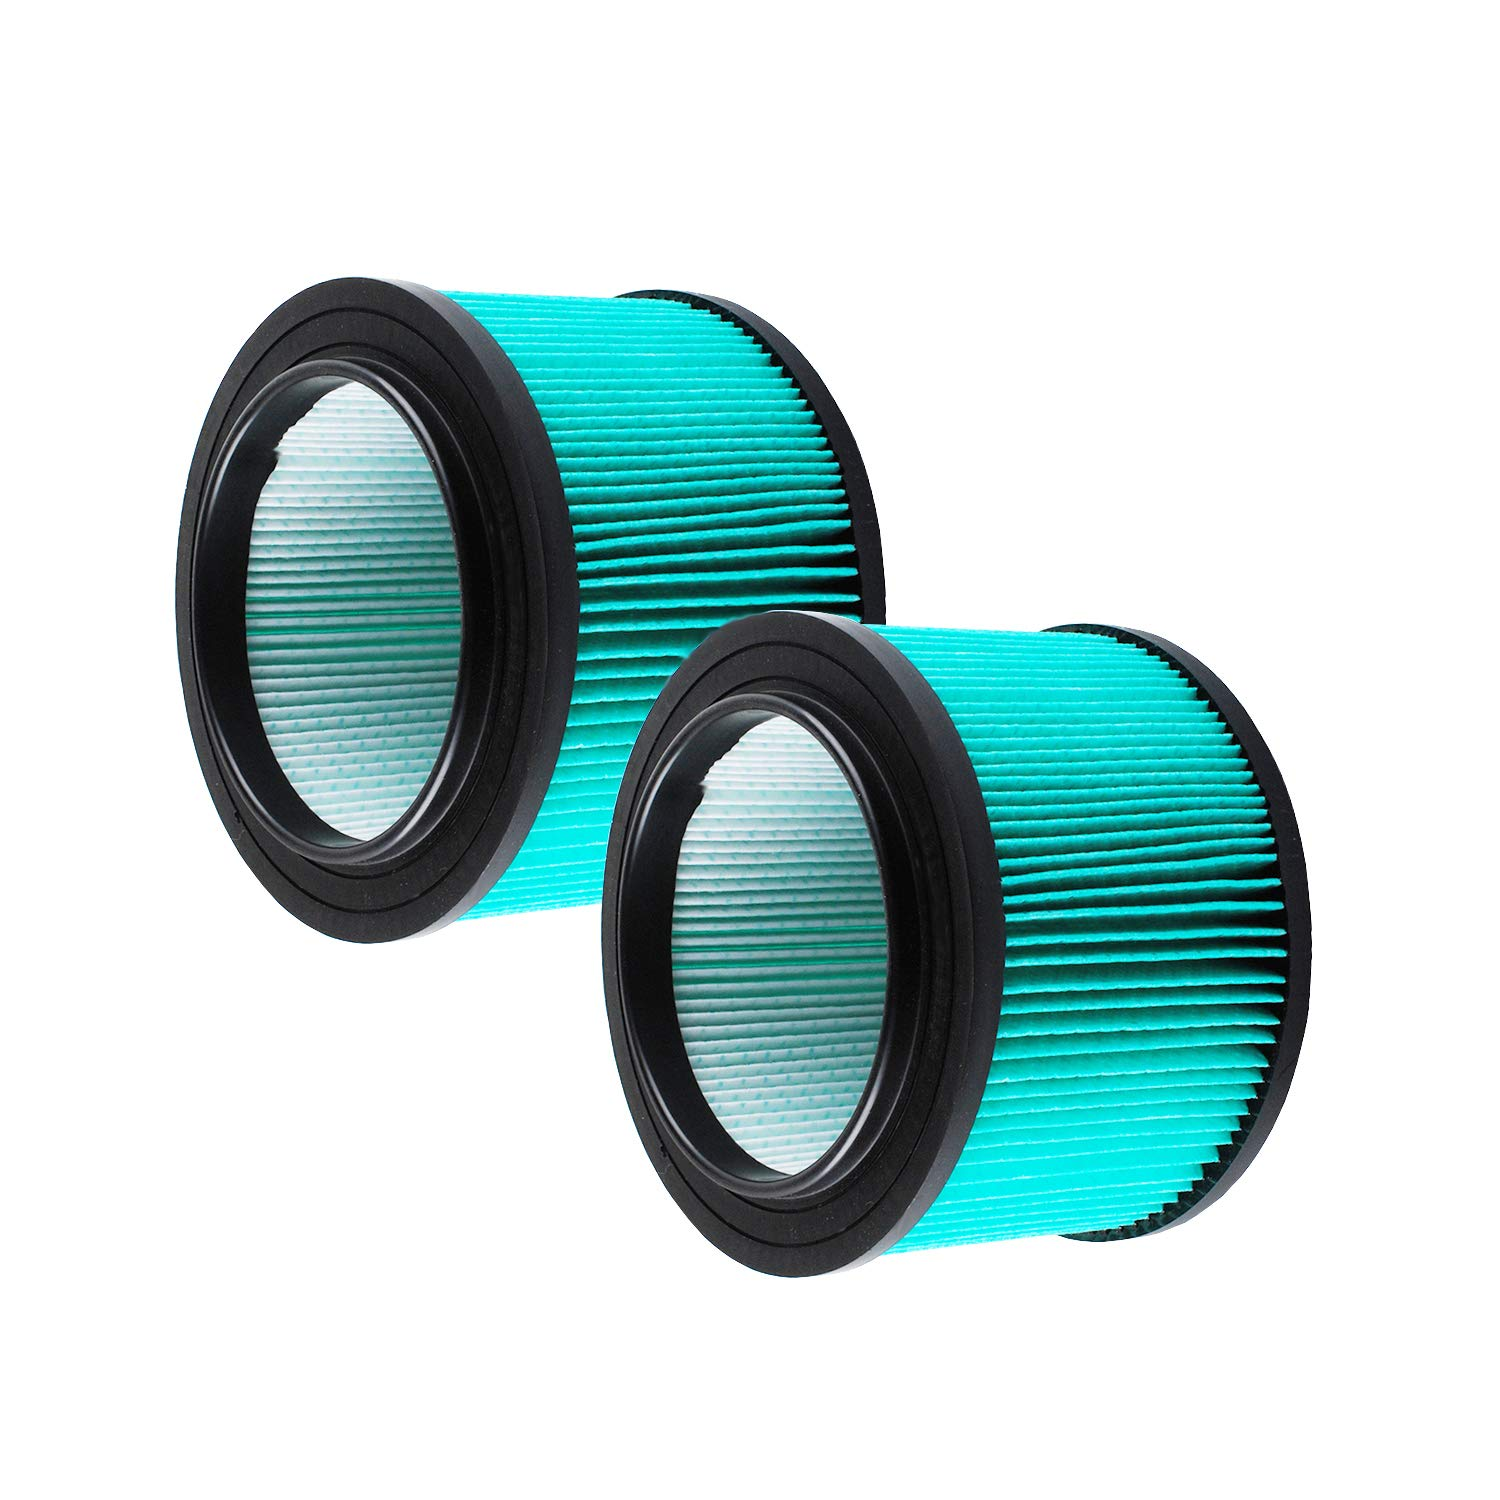 17810 Filter Replacement For Craftsman Shop Vac 917810, Wet Dry Vacuum Filter Fits 3 & 4 Gallon, More features, Upgraded Version Shop Vac Vacuum Filter(Equivalent to 16950)(2 Pack) (green)